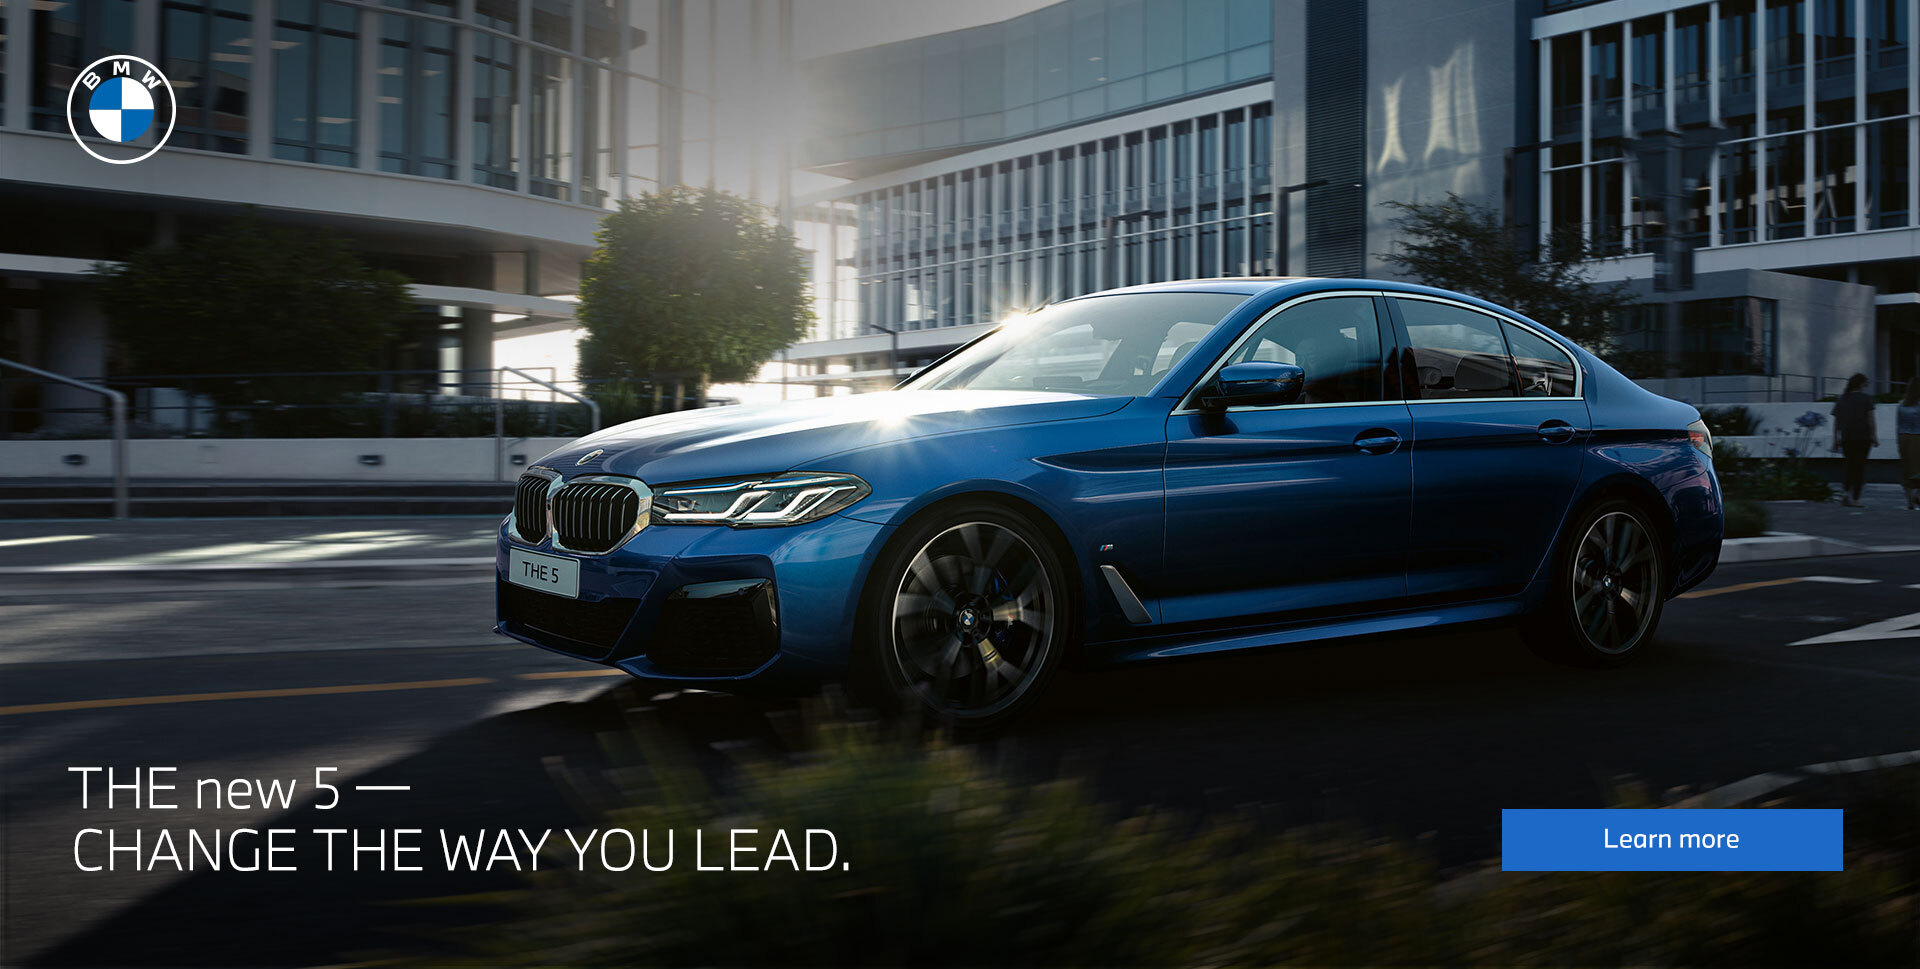 BMW THE 5